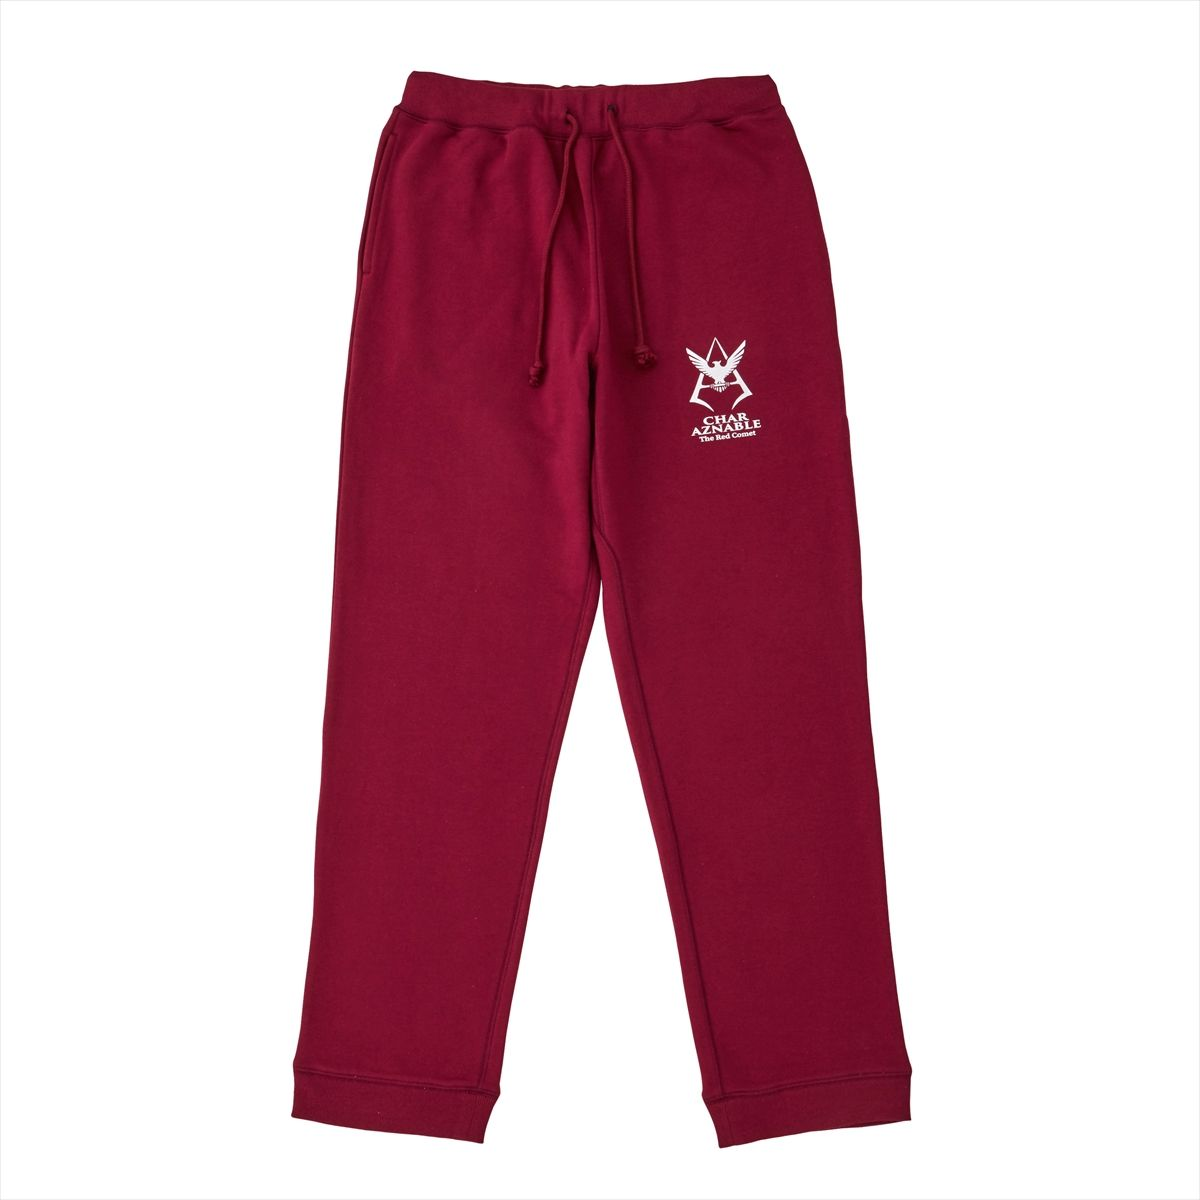 Mobile Suit Gundam Workout Pants